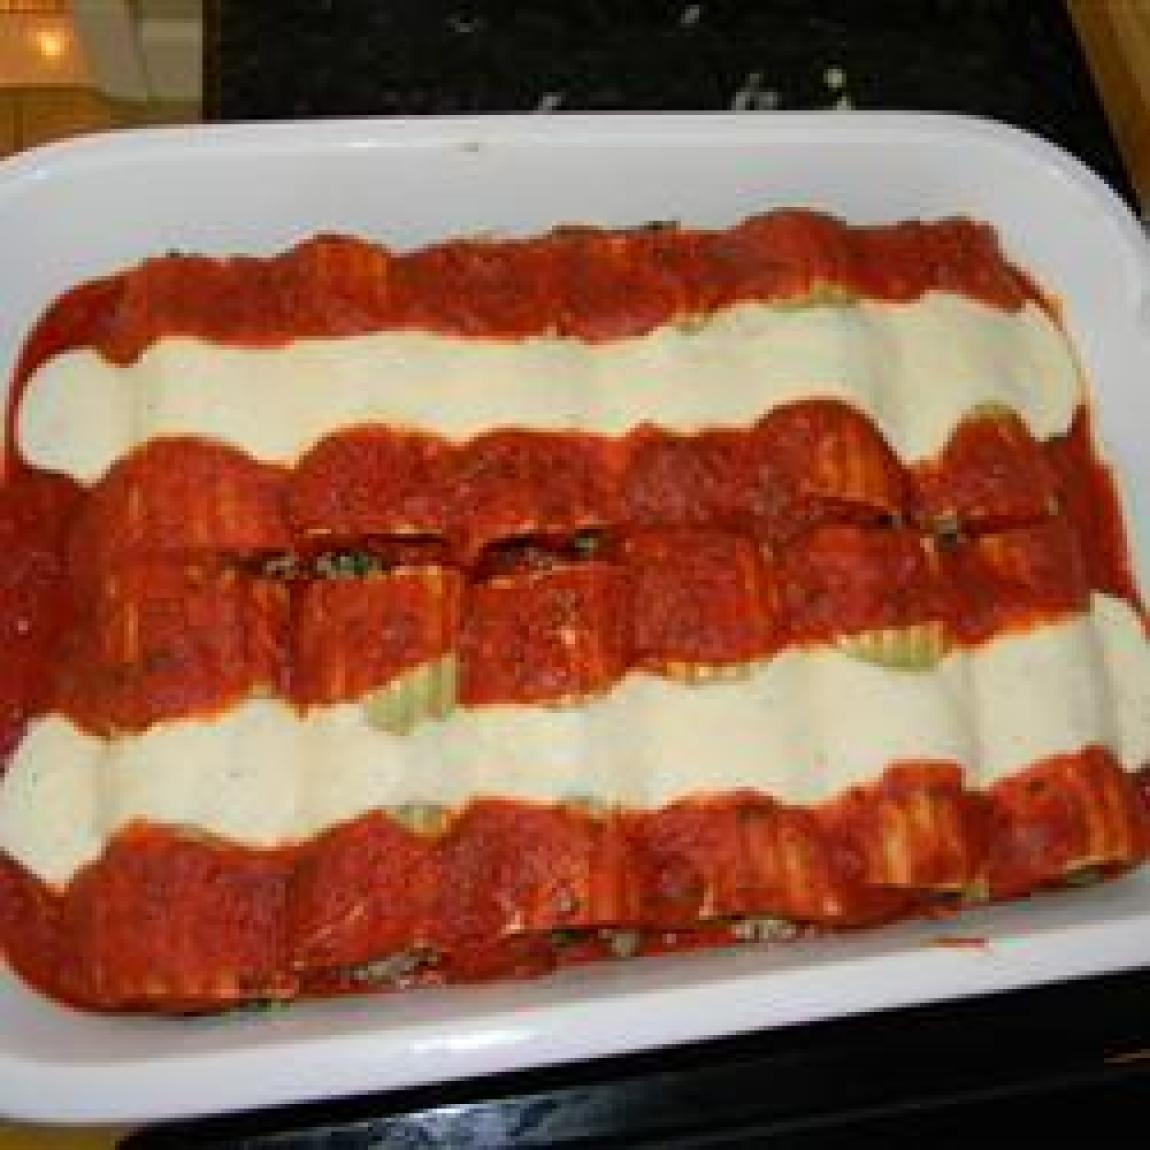 Italian Baked Cannelloni Recipe | Just A Pinch Recipes